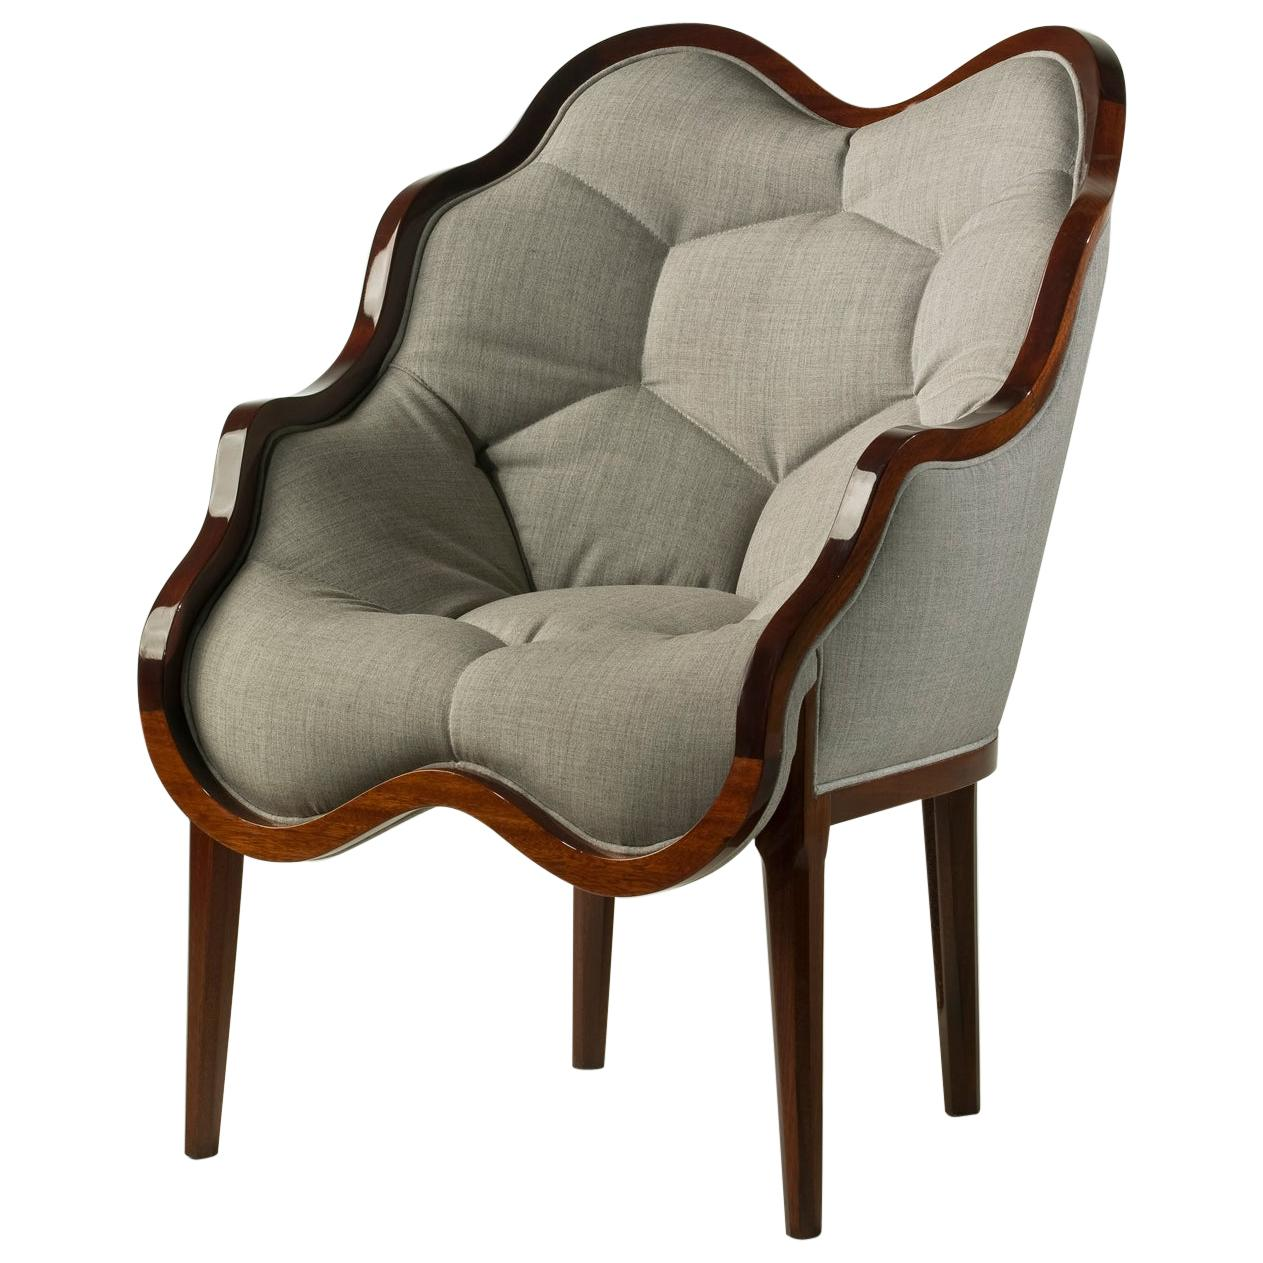 Lui 6/A Armchair with fabric and Solid Wood Frame